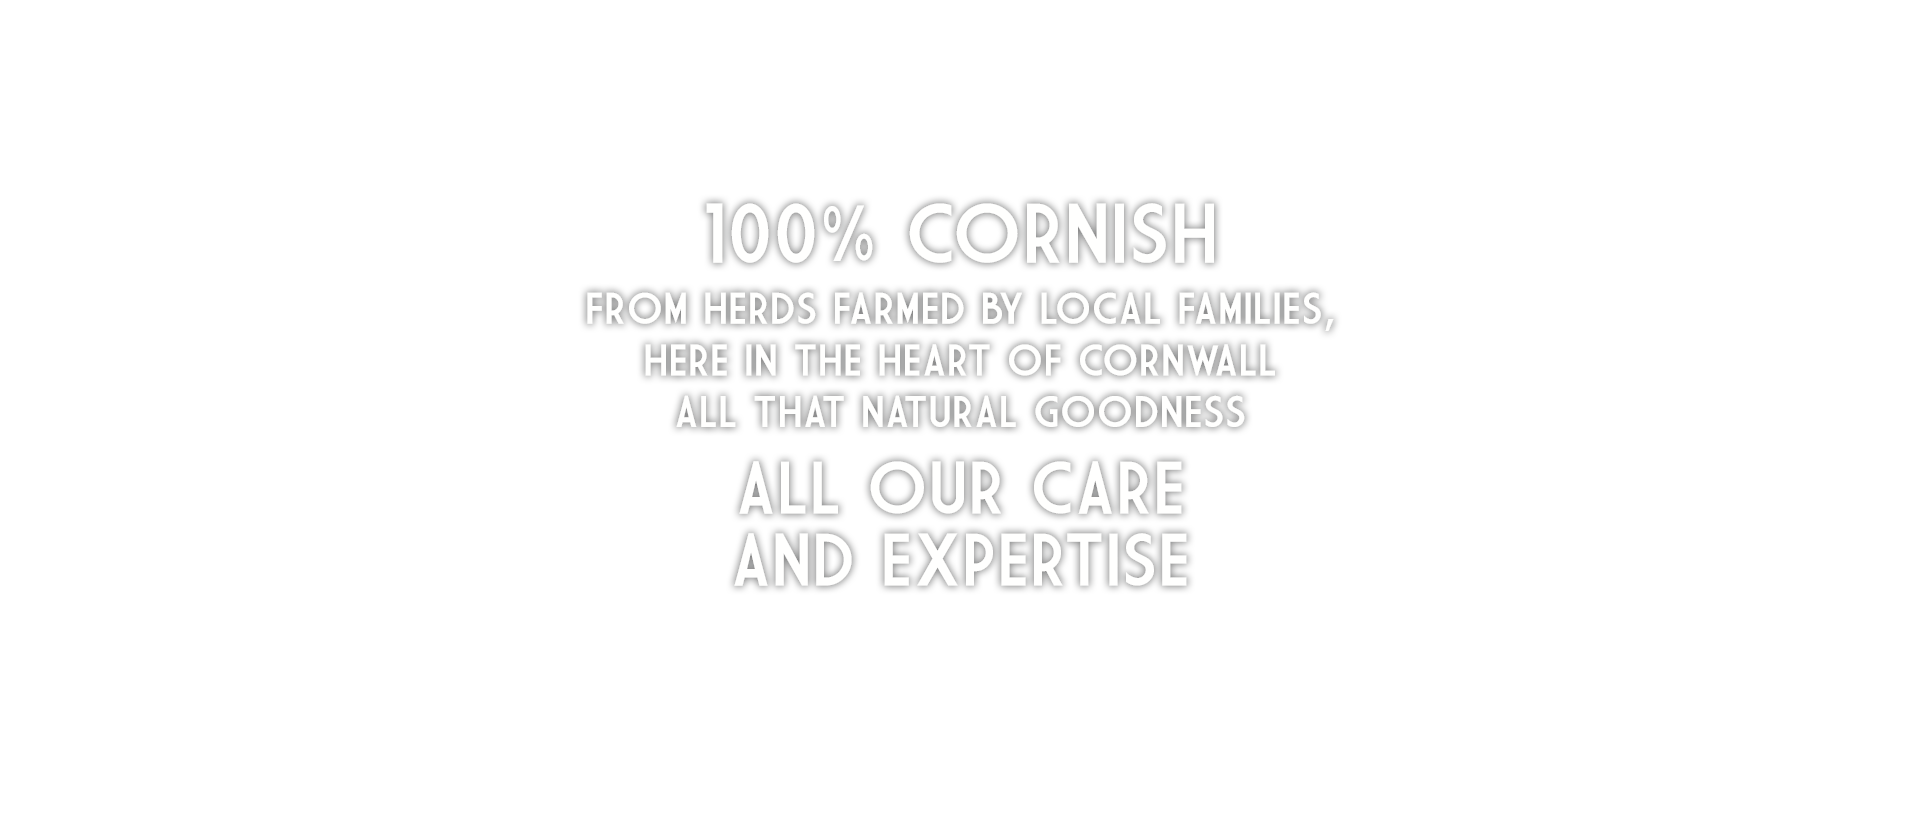 100% Cornish From herds farmed by local families, here in the heart of Cornwall All that natural goodness All our care and expertise